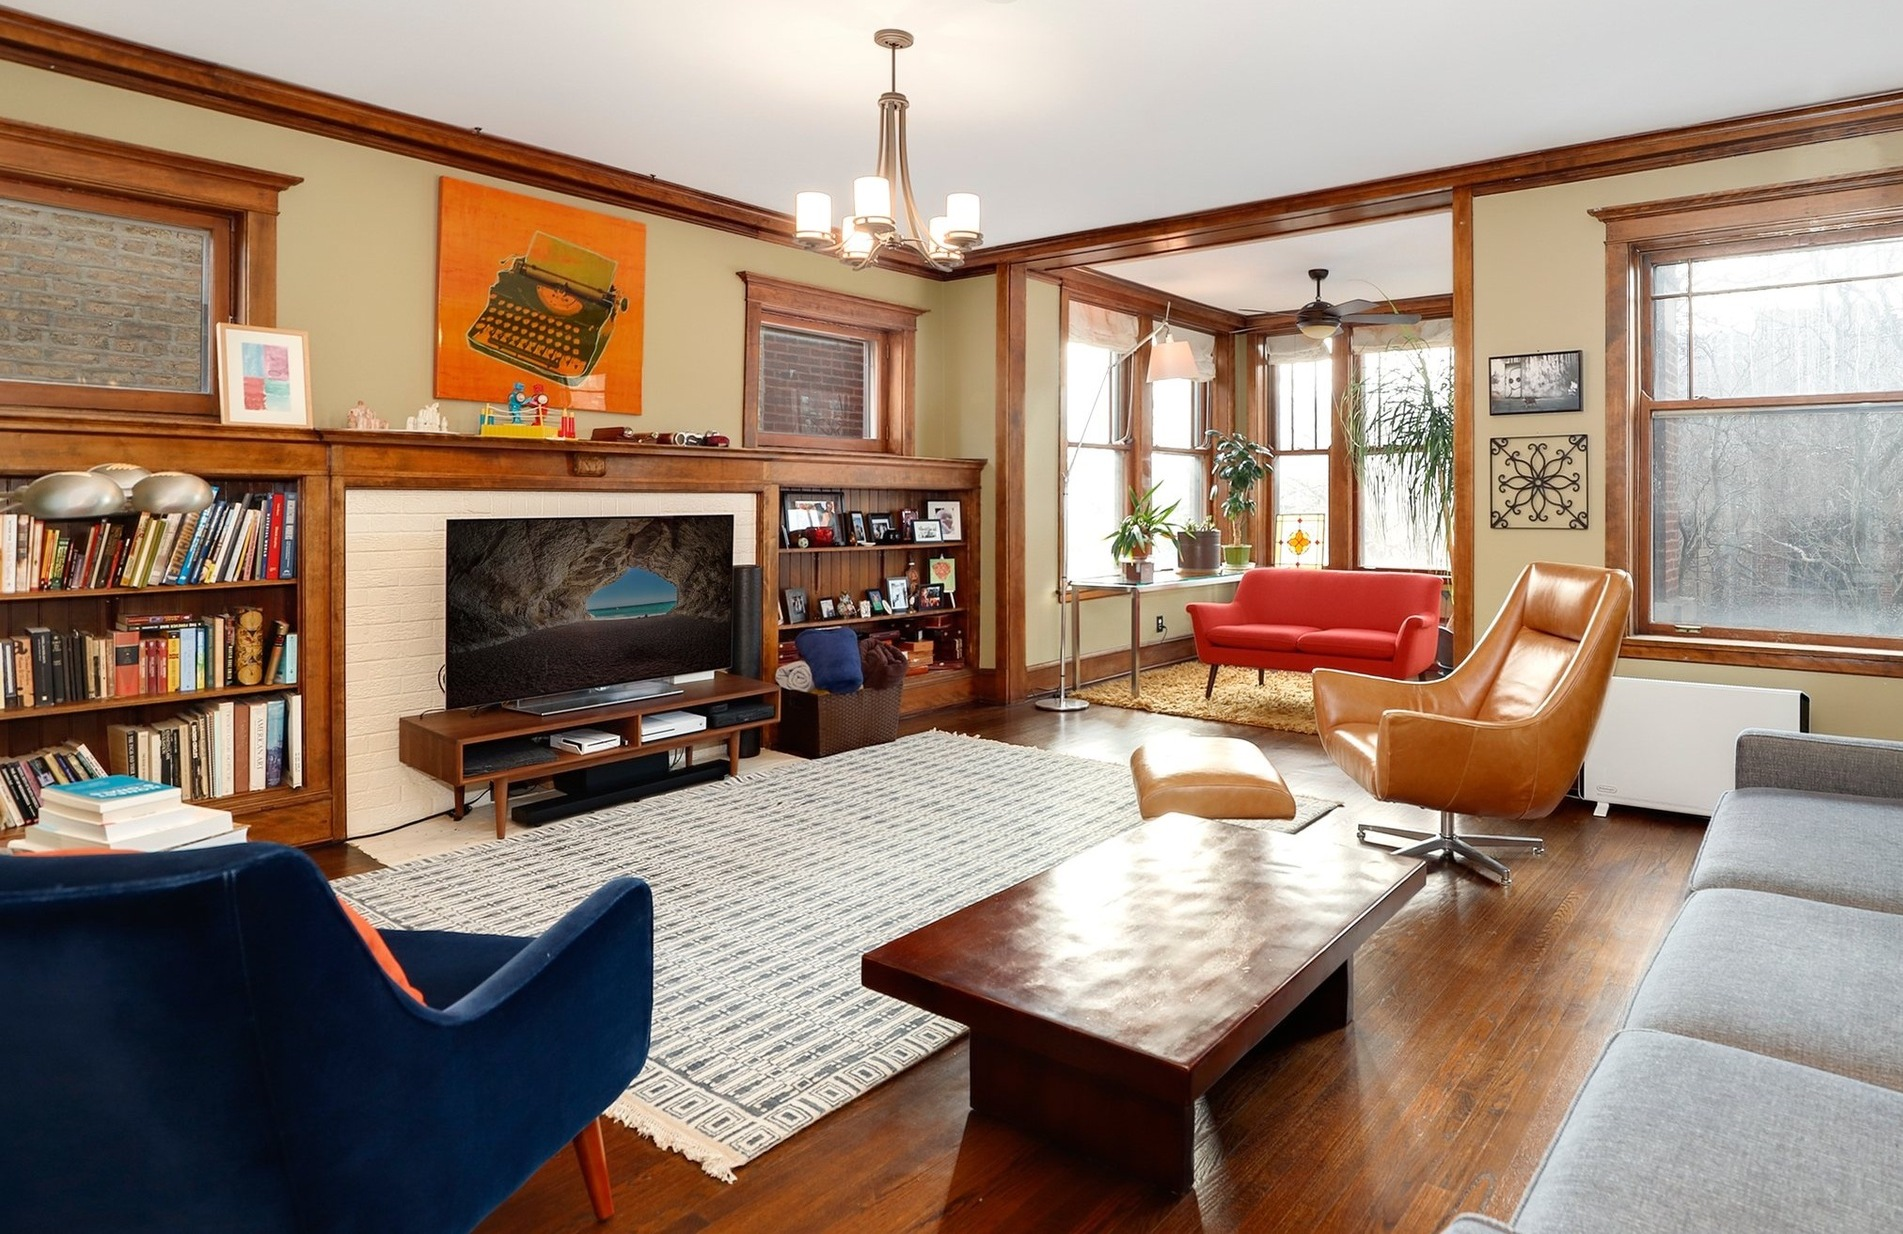 A living room with hardwood floors, a decorative brick fireplace flanked by built-in shelves, an area rug, coffee table, velvet chair, and sofa.